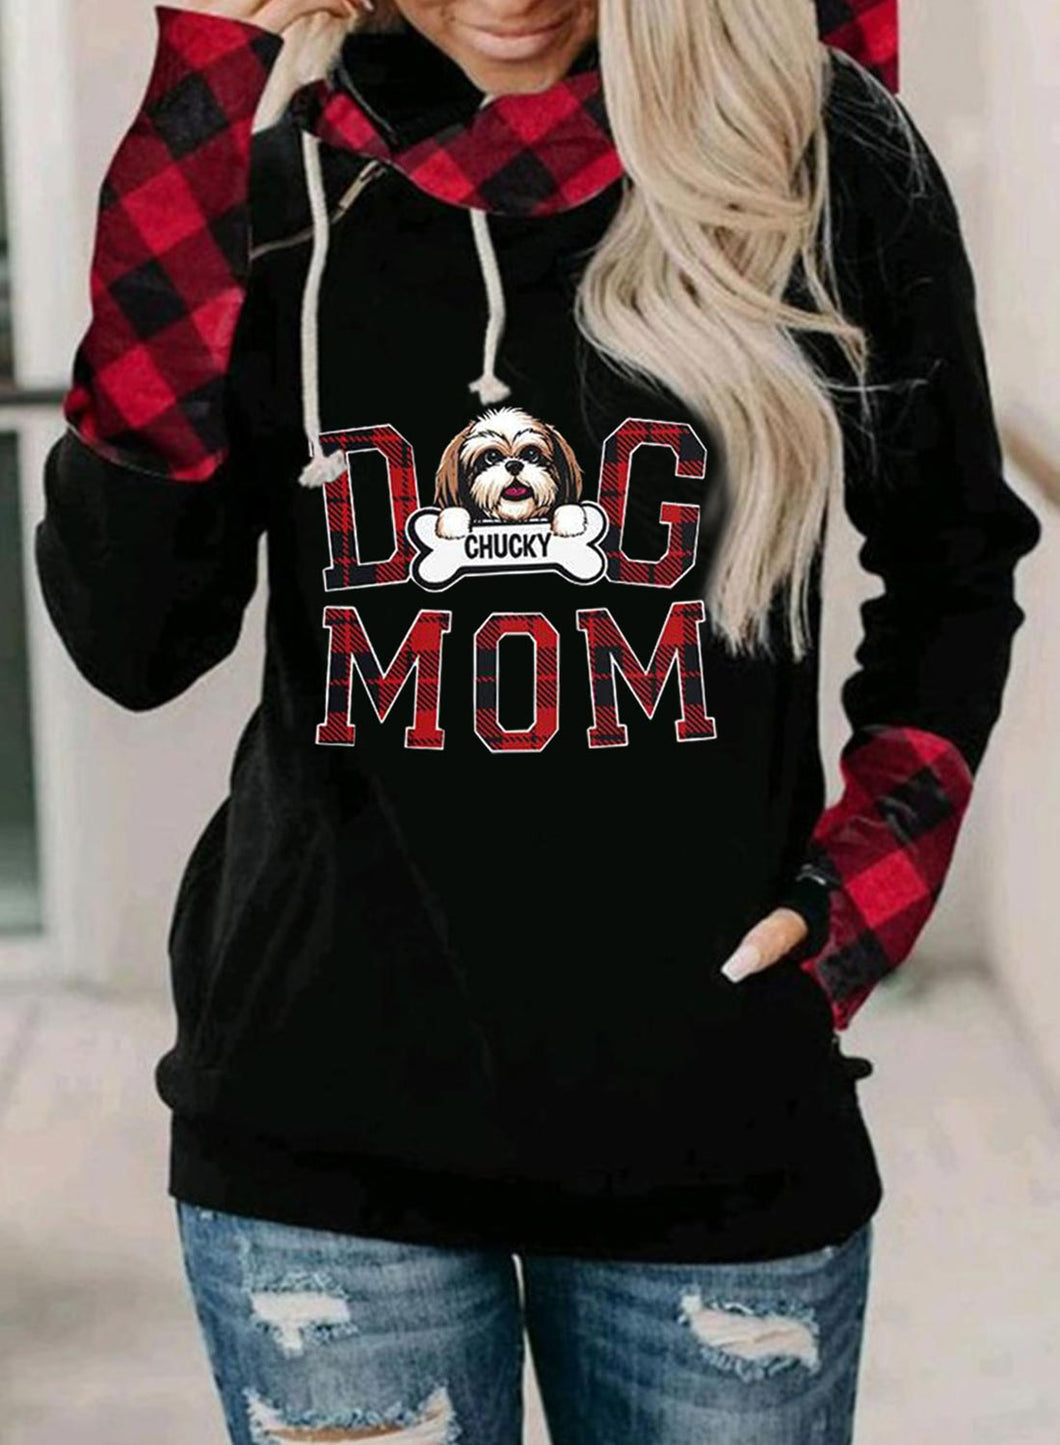 Dog Mom Women's Hoodies Drawstring Turtleneck Long Sleeve Zip Plaid Color Block Animal Print Letter Hoodies With Pockets